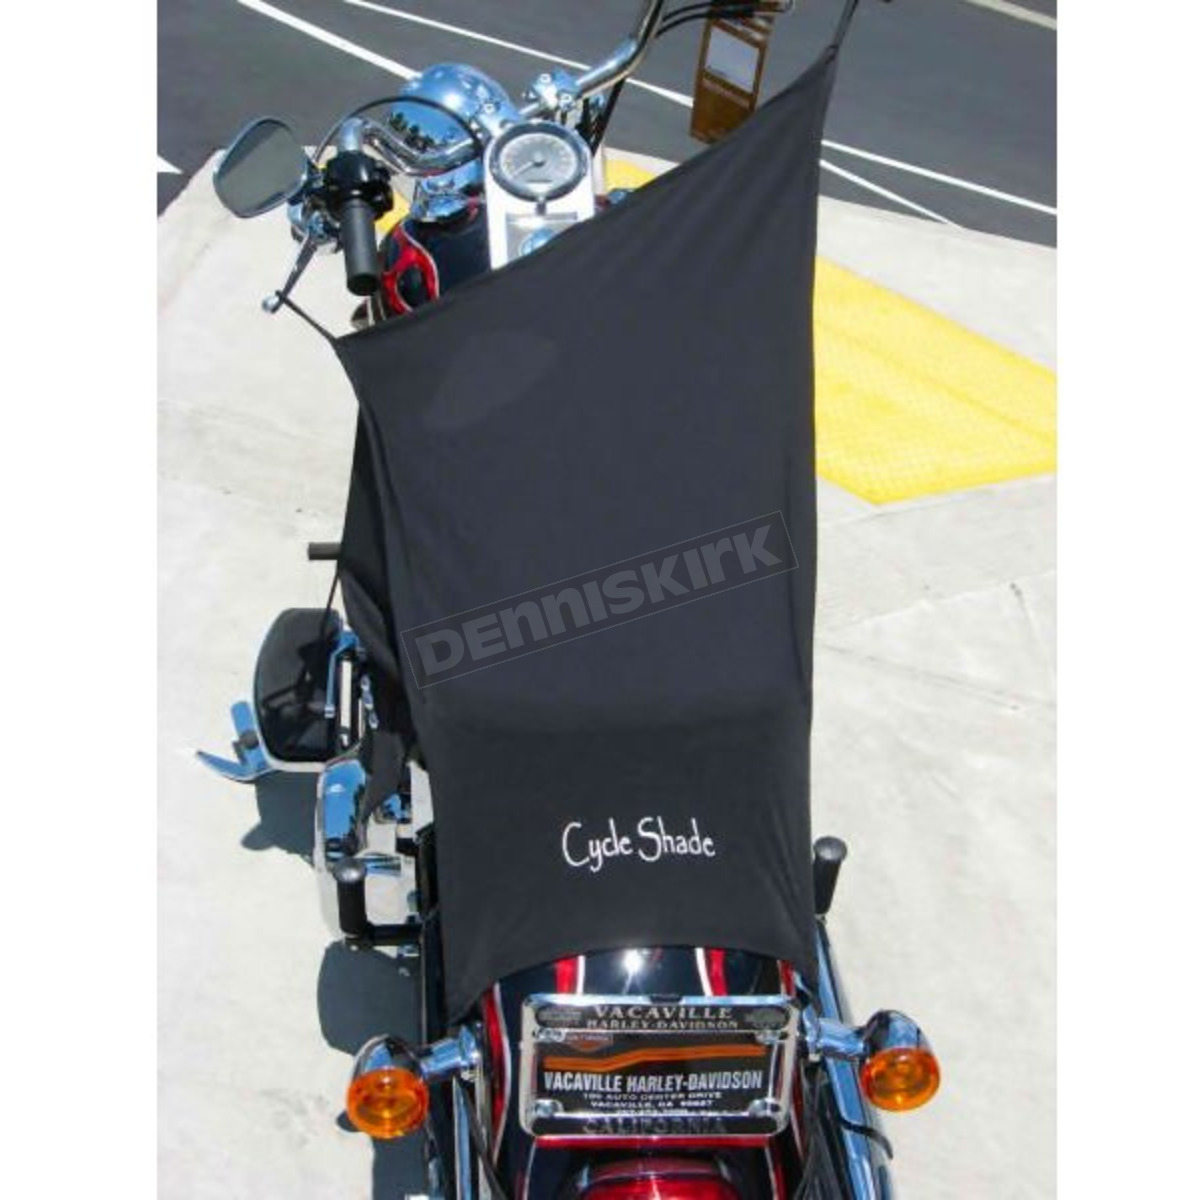 Cycle Shade Motorcycle Seat/Tank Cover - 03141 Harley-Davidson ... on jeep with motorcycle engine, scooter with motorcycle engine, suzuki with motorcycle engine, golf cart engine hp, wheelchair with motorcycle engine, truck with motorcycle engine, tractor with motorcycle engine, harley golf cart engine, golf cart conversion for jeep, used ezgo golf cart engine, boat with motorcycle engine, vespa with motorcycle engine, golf cart engine conversion, golf cart engine swap, golf cart atv engine, ezgo golf cart robin engine, golf cart with motorcycle tires, go kart with hayabusa engine, golf cart motor swap, stock hayabusa engine,